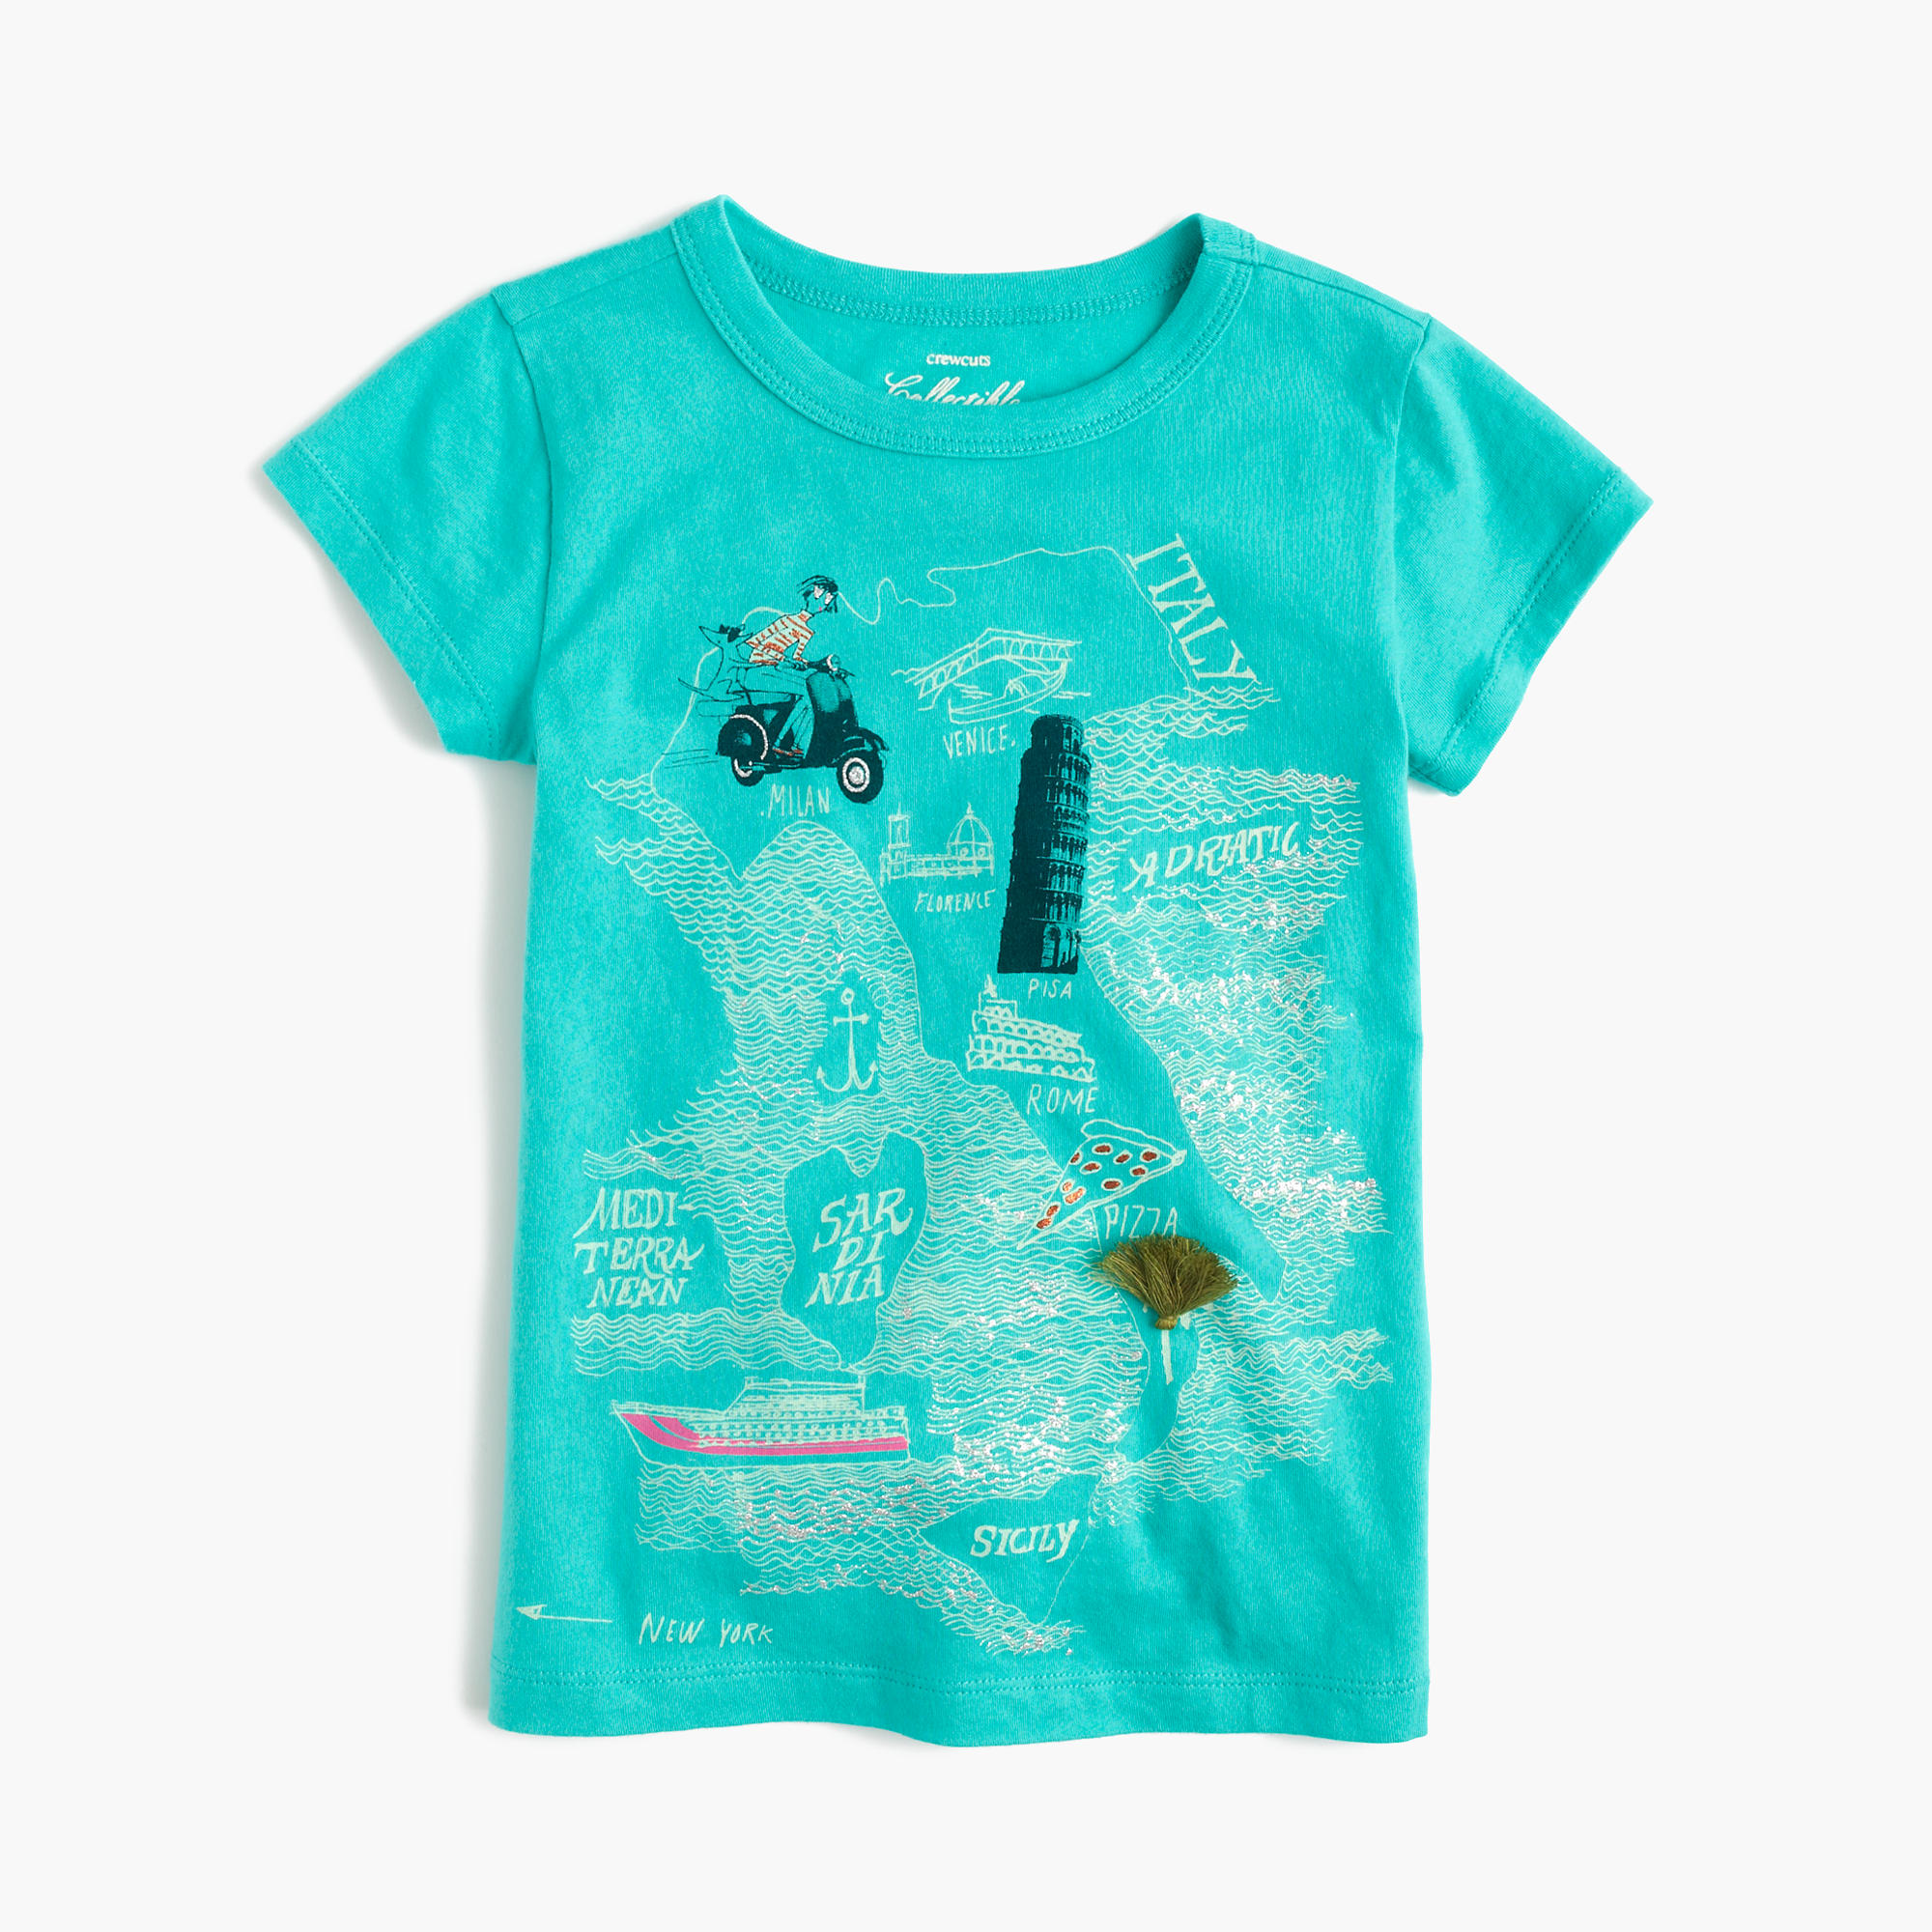 Girls 39 olive in italy t shirt j crew for Shirts made in italy